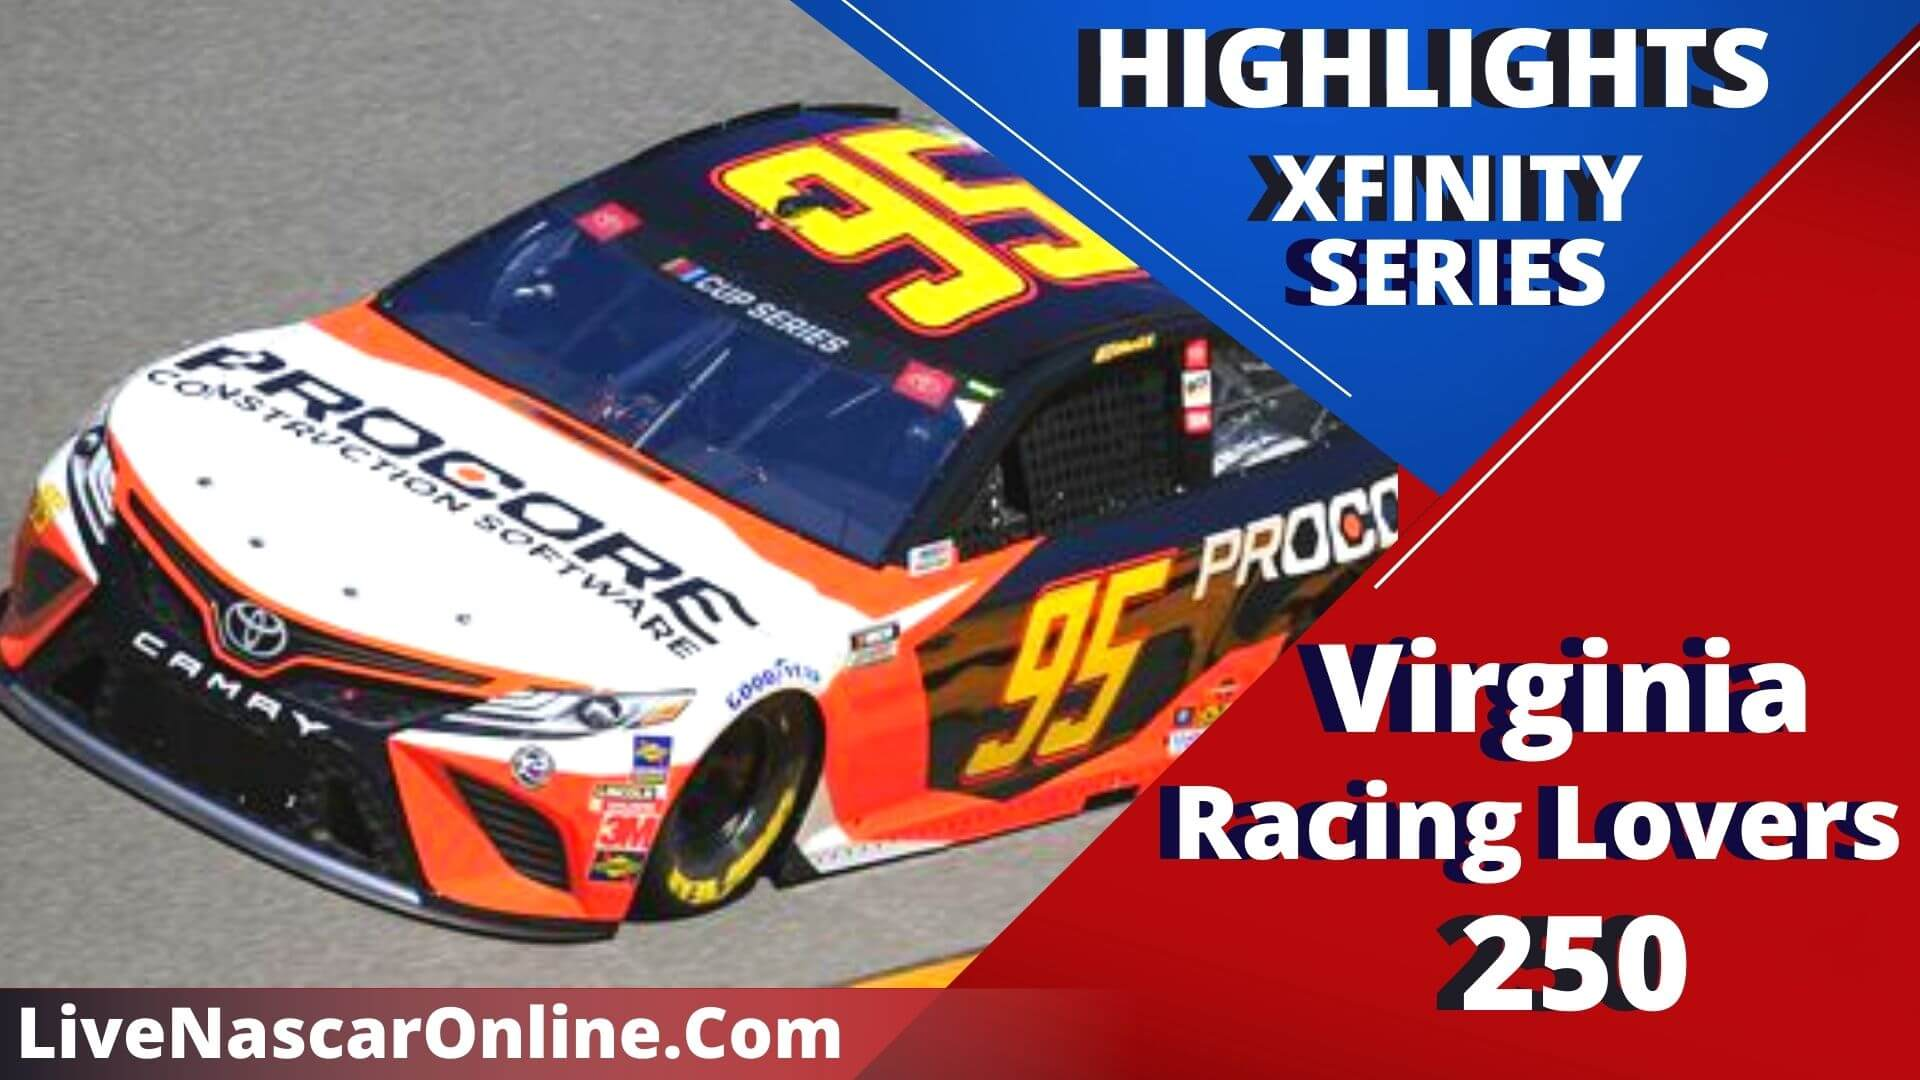 Virginia Racing Lovers 250 Highlights 2020